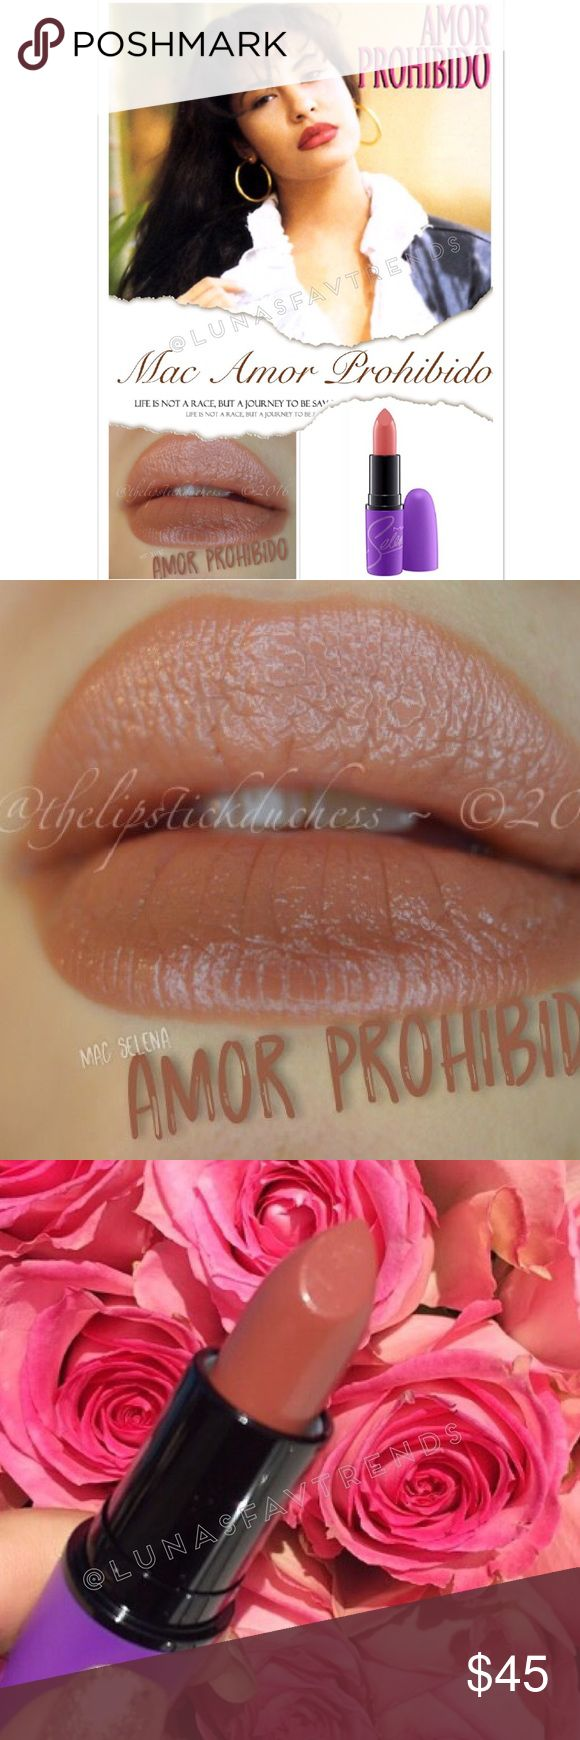 "💄MAC SELENA AMOR PROHIBIDO LIPSTICK💄 🚫NO TRADES🚫PRICE IS FIRM✅SOLD OUT ONLINE    This item comes brand new in its original packaging, never used. This was part of the limited edition collection MAC Cosmetics released in memory of iconic singer Selena. This collection sold out extremely quickly and is highly sought after.   ""Amor Prohibido"" is a pinky midtone brown with a glaze (shiny) finish.   Guaranteed 100% authentic! MAC Cosmetics Makeup Lipstick"